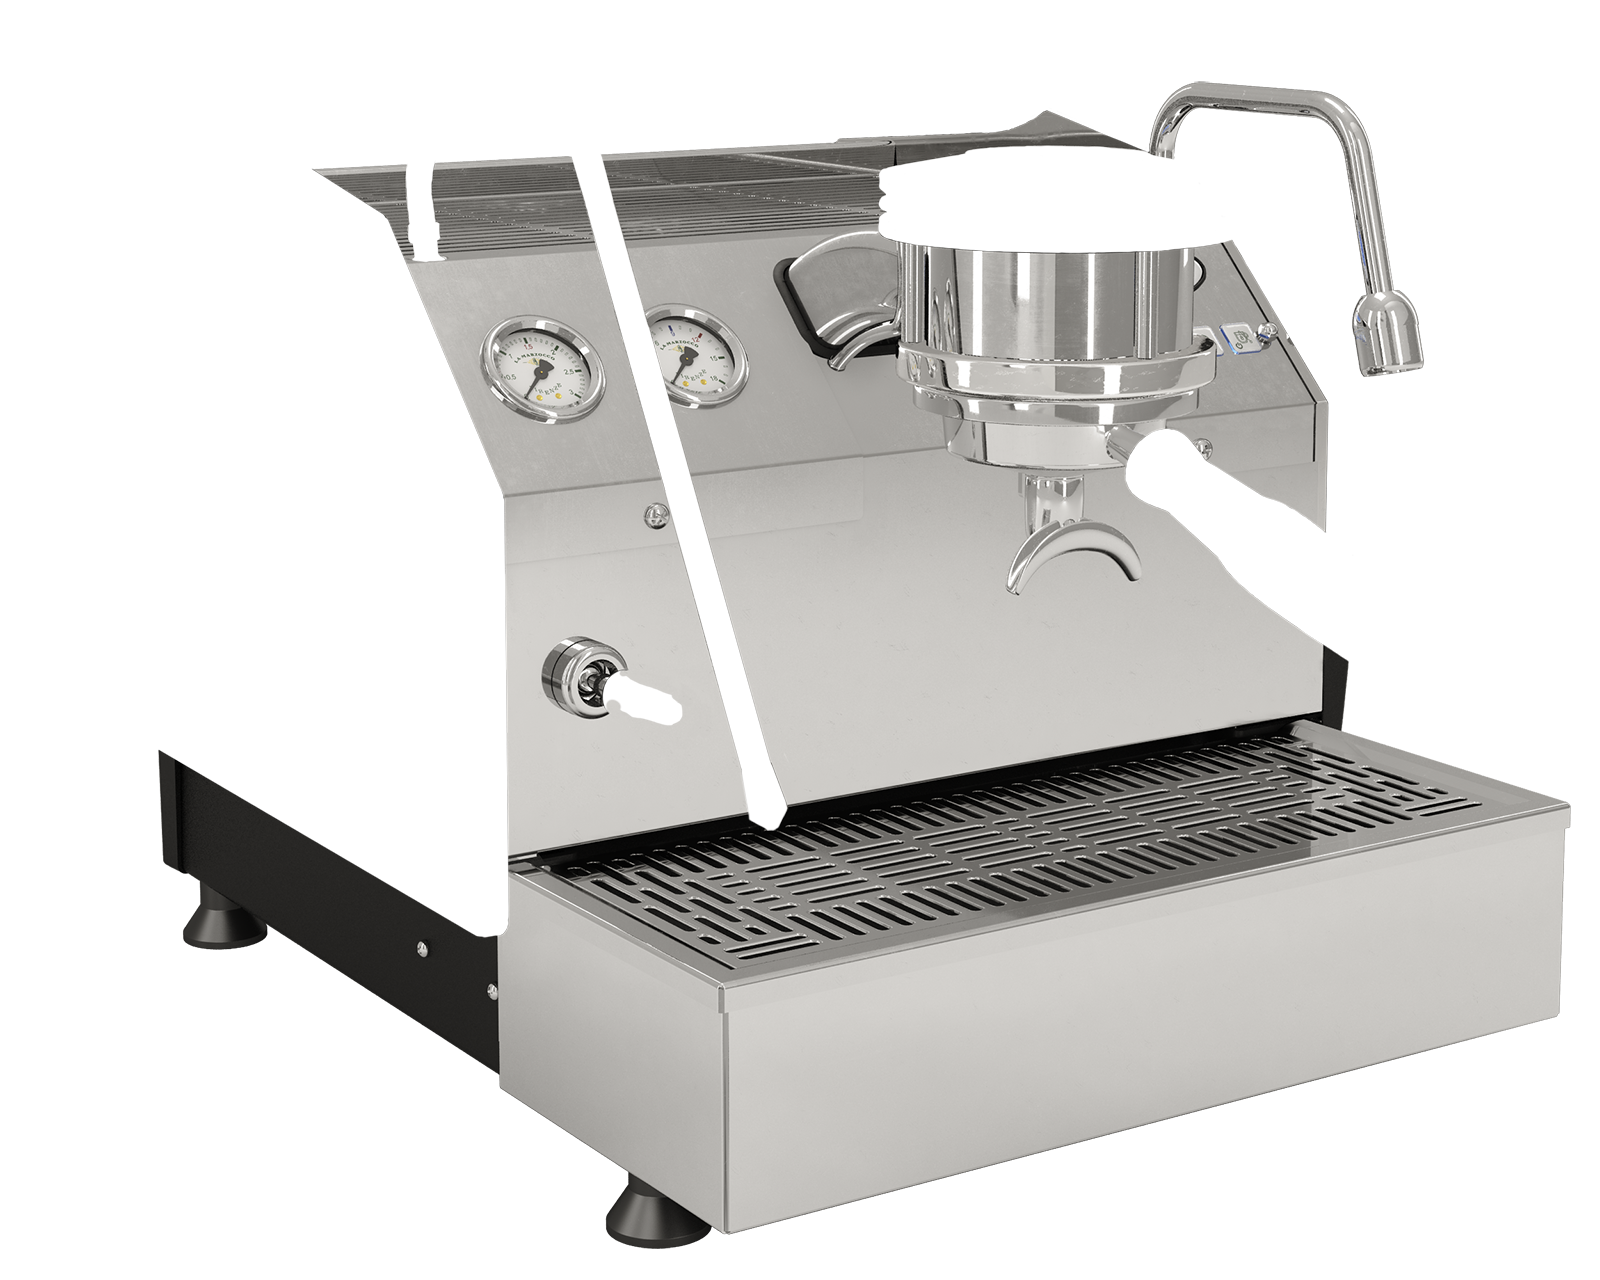 GS3 Bread tree, Espresso machine, Coffee maker